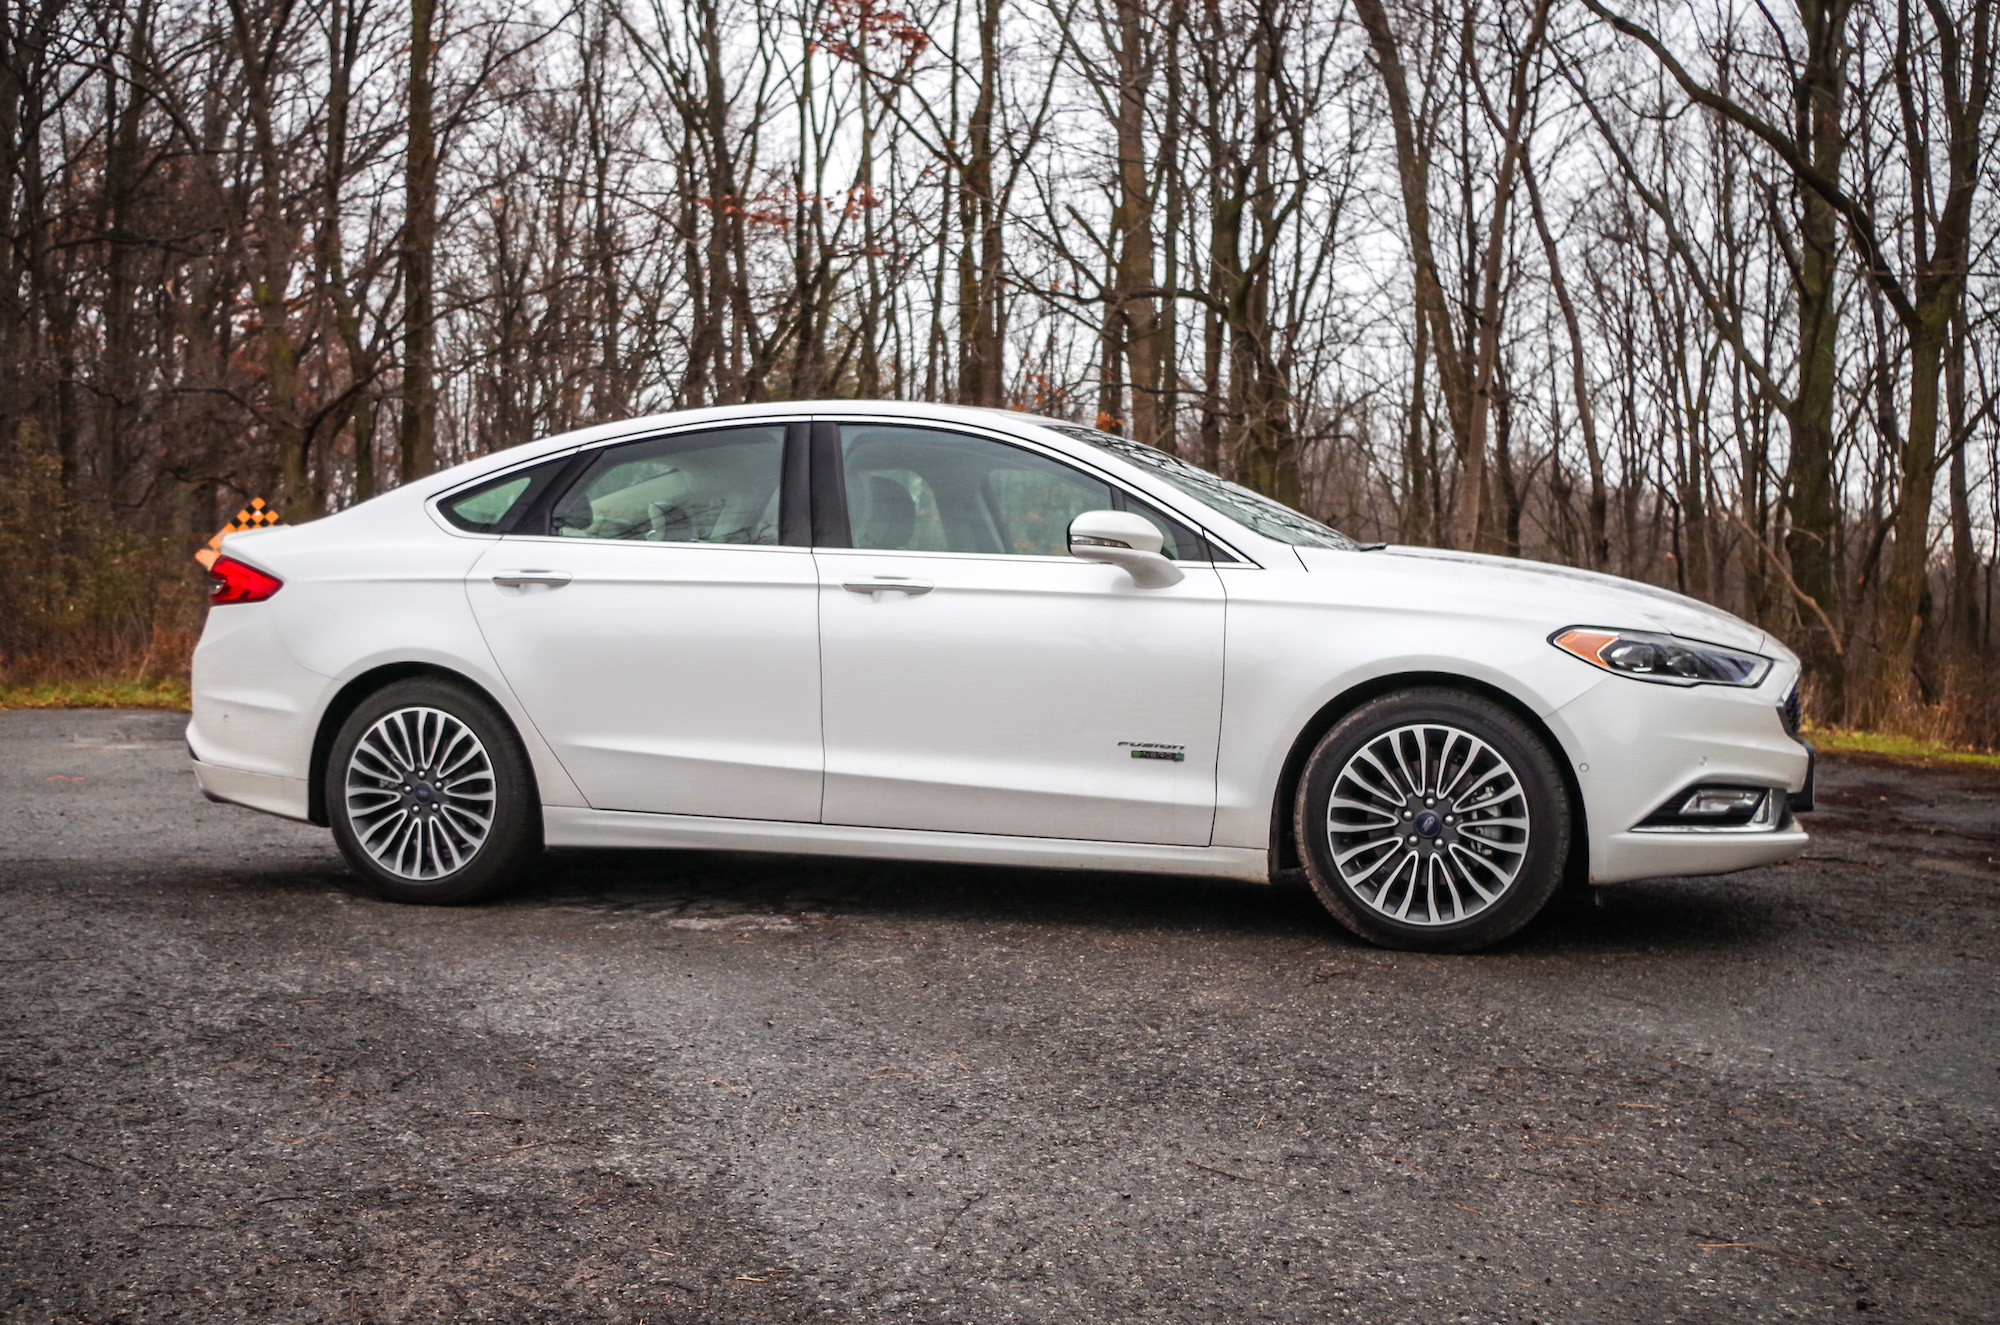 company first review ford platinum fusion autocontentexp autonxt motor comwp drive action